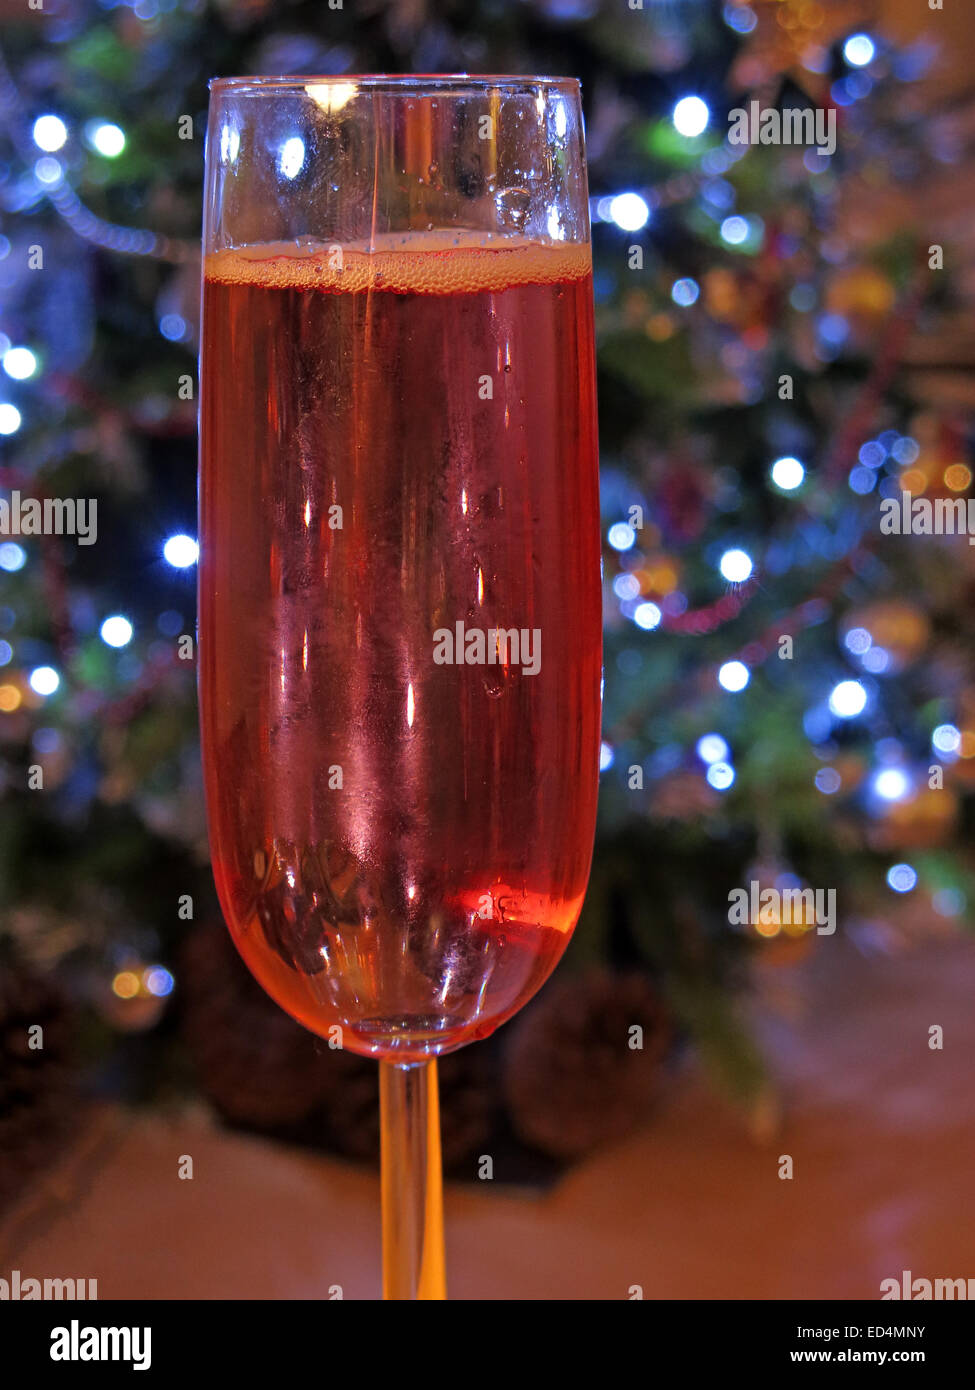 Dangers of festive drinking, one more glass of rose wine at Christmas, in front of tree of decorations - full glass - Stock Image